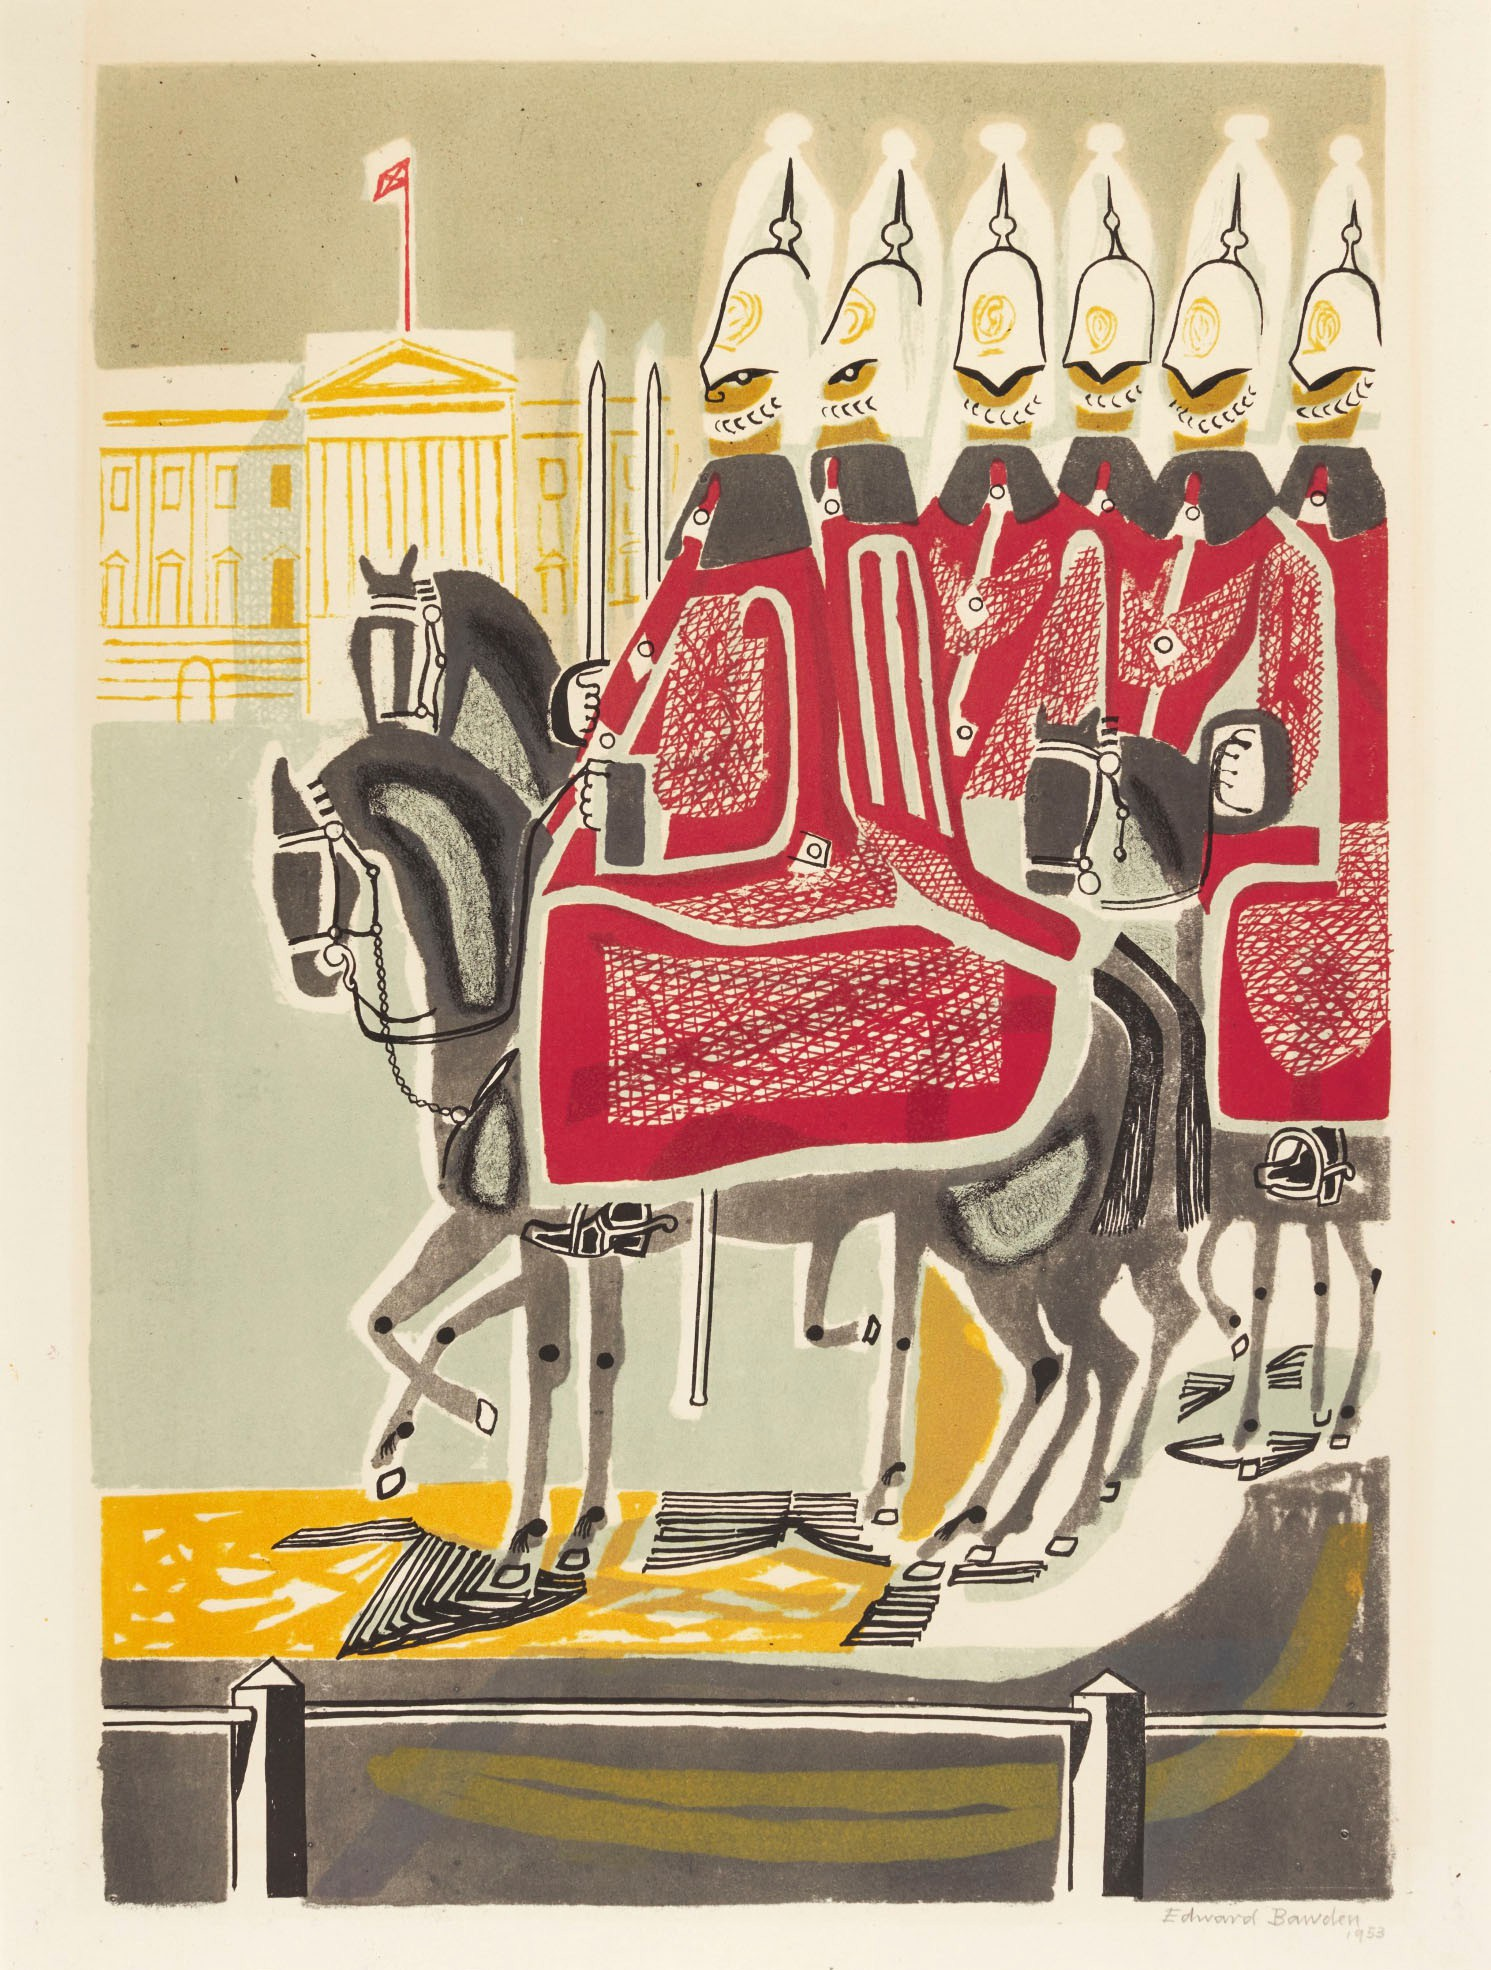 EDWARD BAWDEN, R.A. | LIFE GUARDS